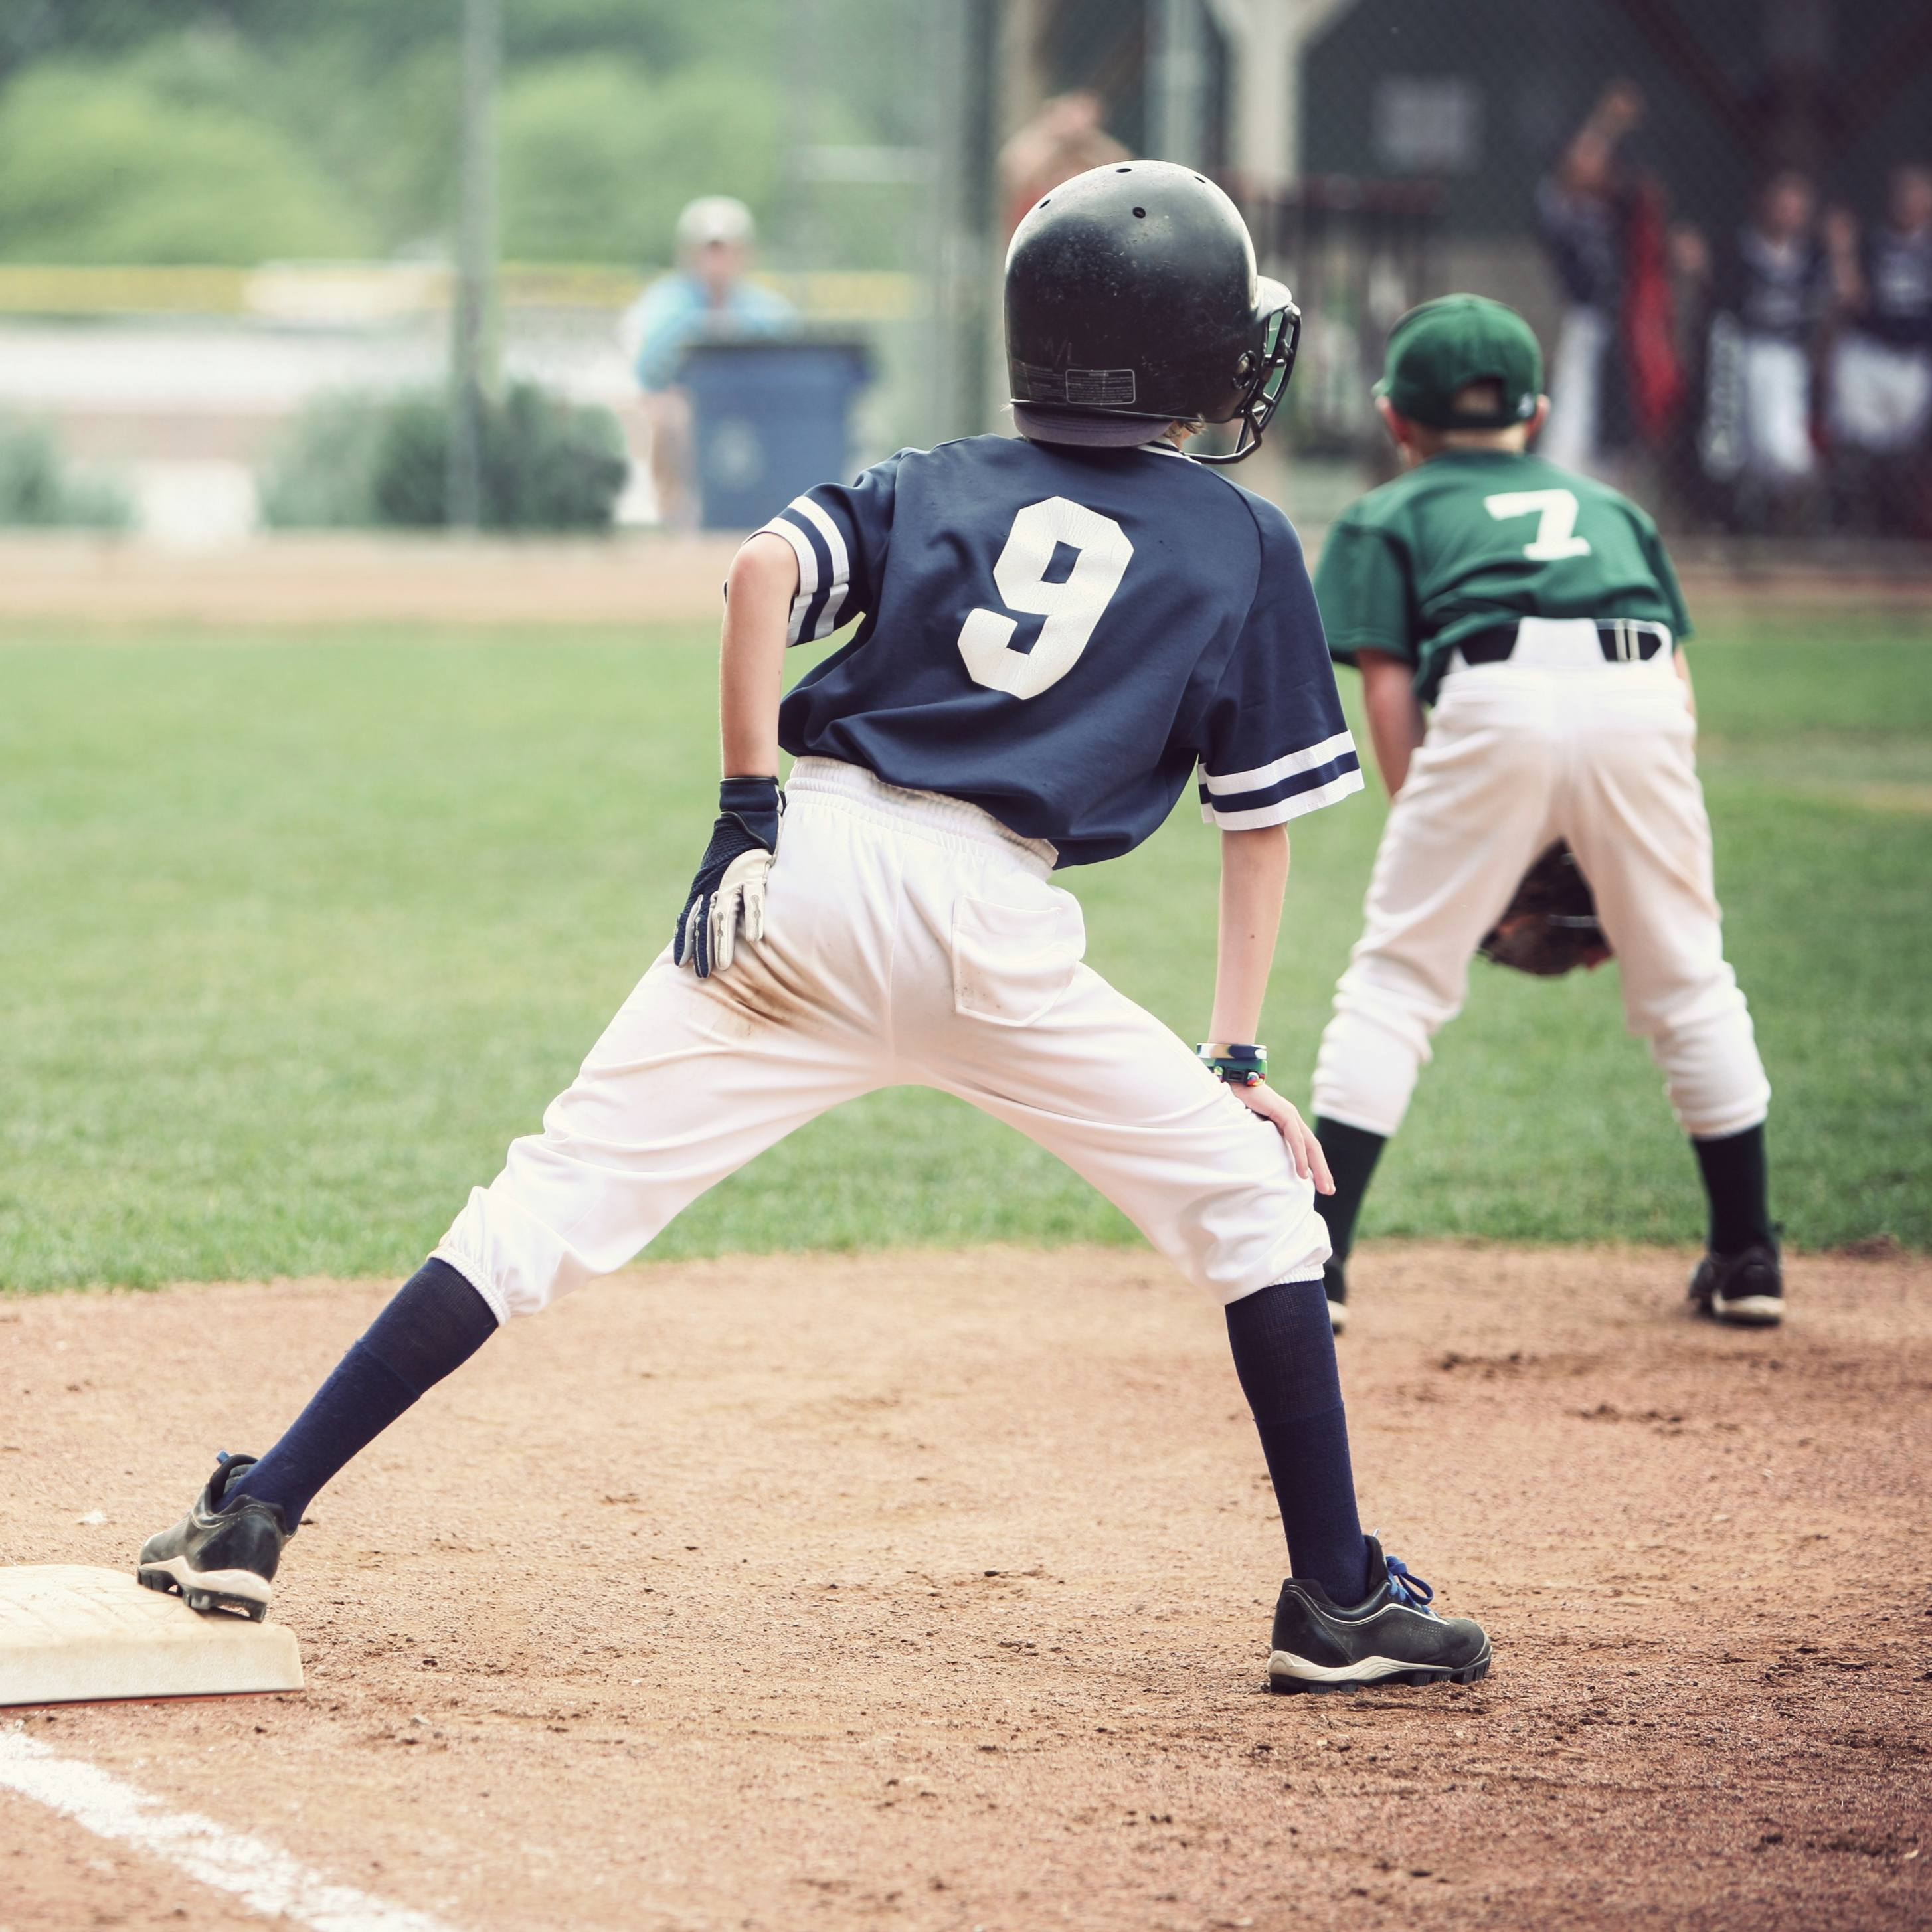 young baseball players on the field with one clinging to a base